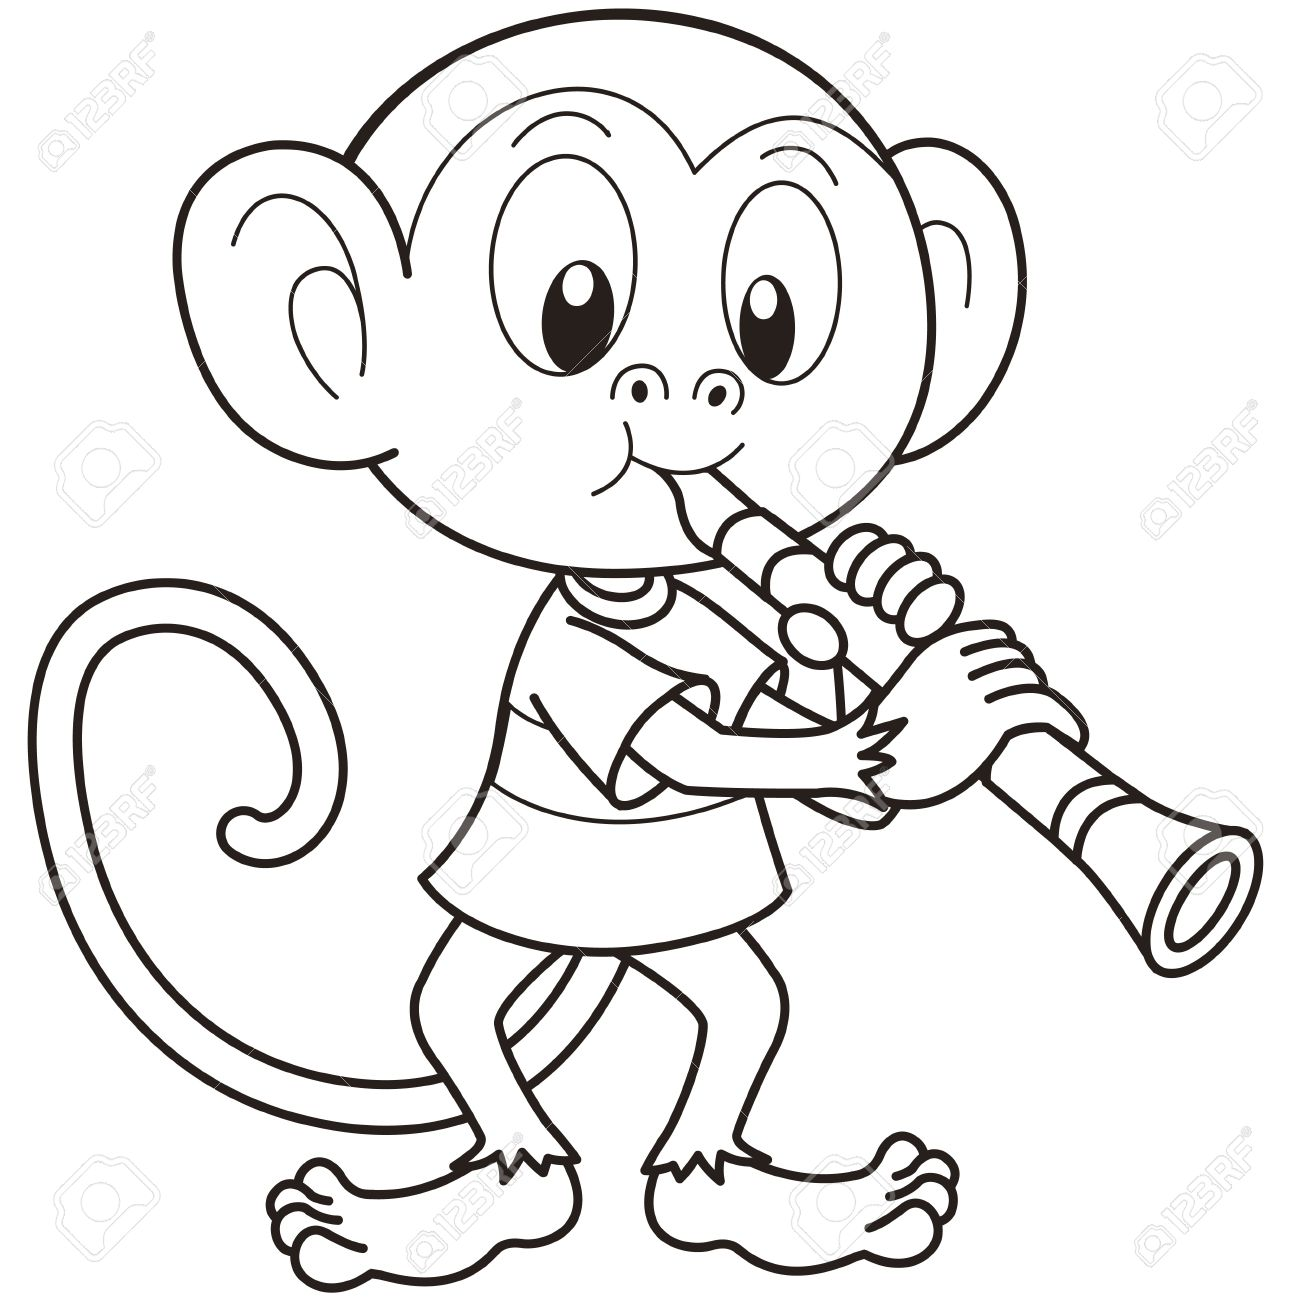 cartoon monkey playing a clarinet black and white royalty free